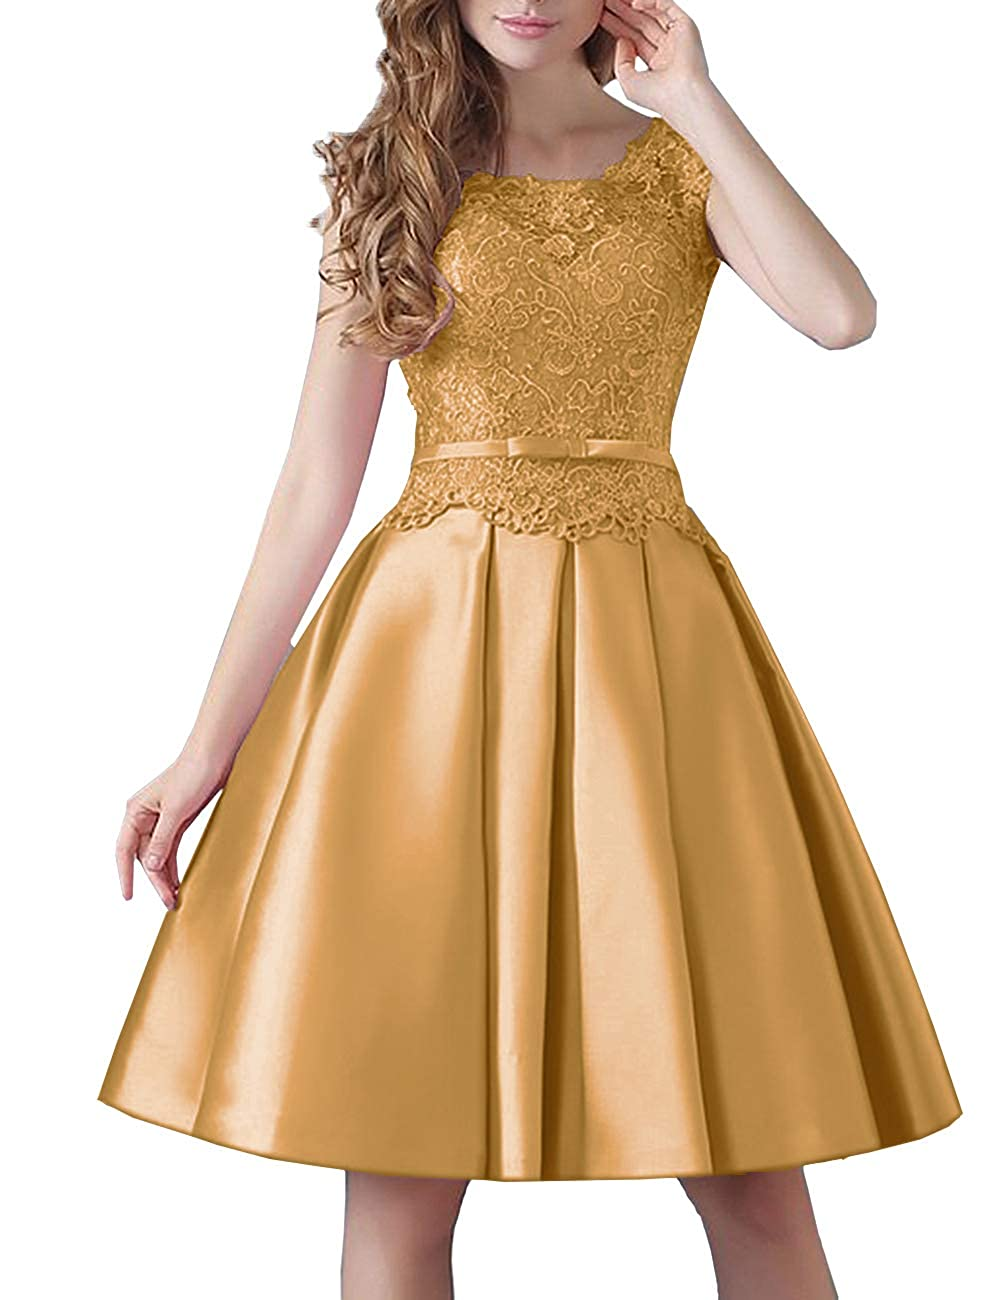 gold Uther Prom KneeLength Lace Cocktail Dress Short Stain Homecoming Dresses for Girls